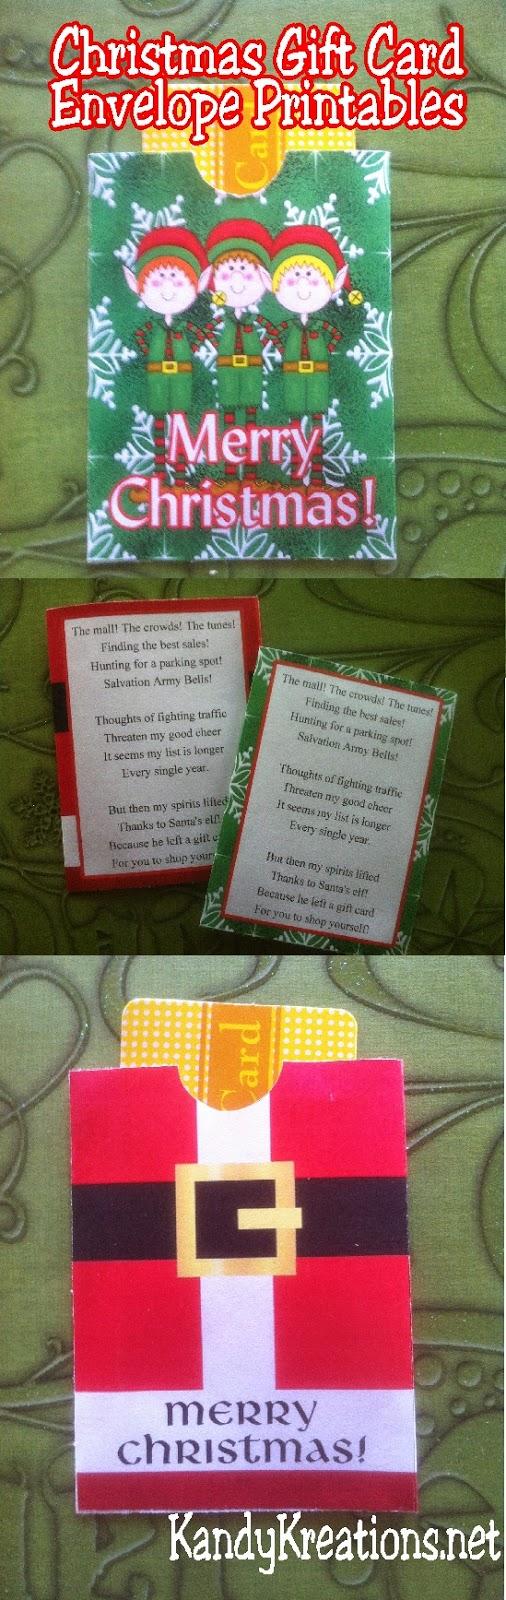 Everyone loves to receive gift cards at Christmas, but they aren't much fun to give.  Solve that problem with these cute Christmas gift card envelopes.  With this free printable you can print your own gift card envelopes with a cute Christmas poem and design so everyone will be happy! #giftcard #printable #christmasgift #diypartymomblog